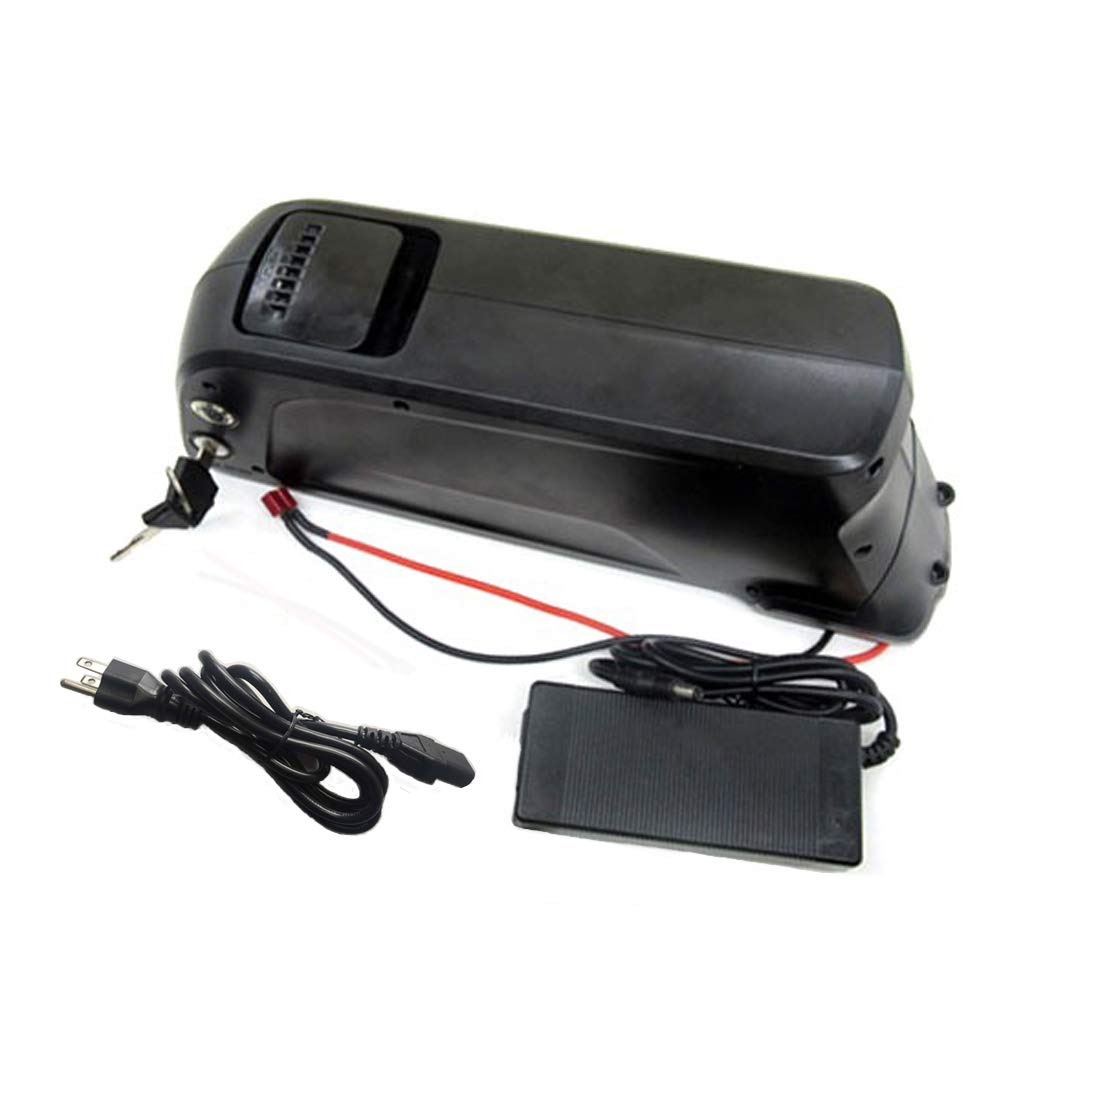 SunB-Dolphin01 48V 11.6AH E-Bike Battery with Panasonic 2900MAH Batteries + BMS + Charger